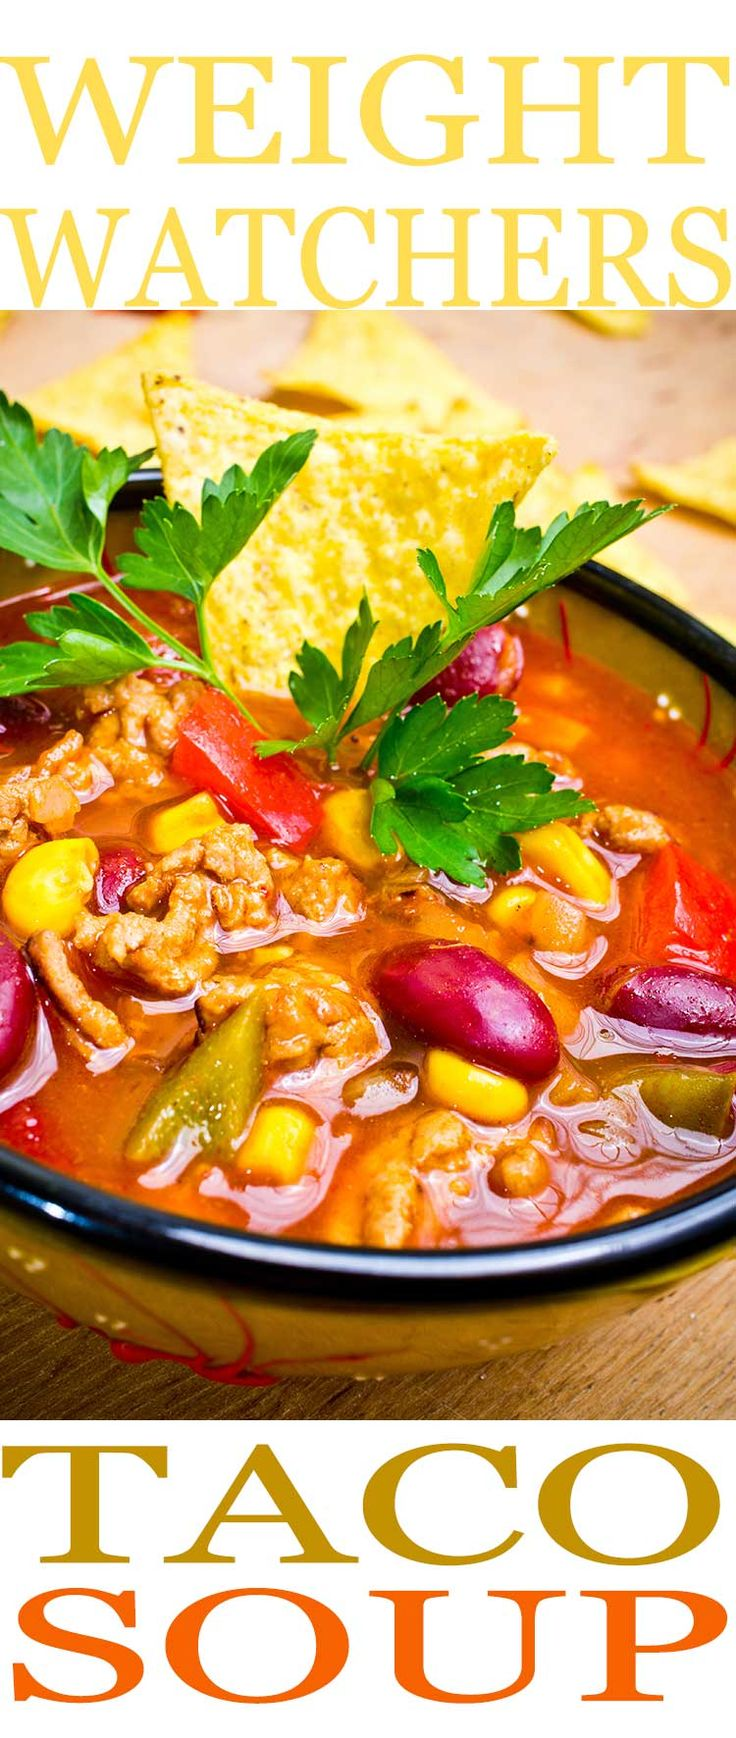 Taco Soup is one of the easiest Weight Watchers recipes to make and it is so full of flavor you won't even think about being on a diet. Enjoy a healthier way of eating and our easy Taco Soup recipe. Make this into a Weight Watchers crock pot meal and have it ready when you get home.